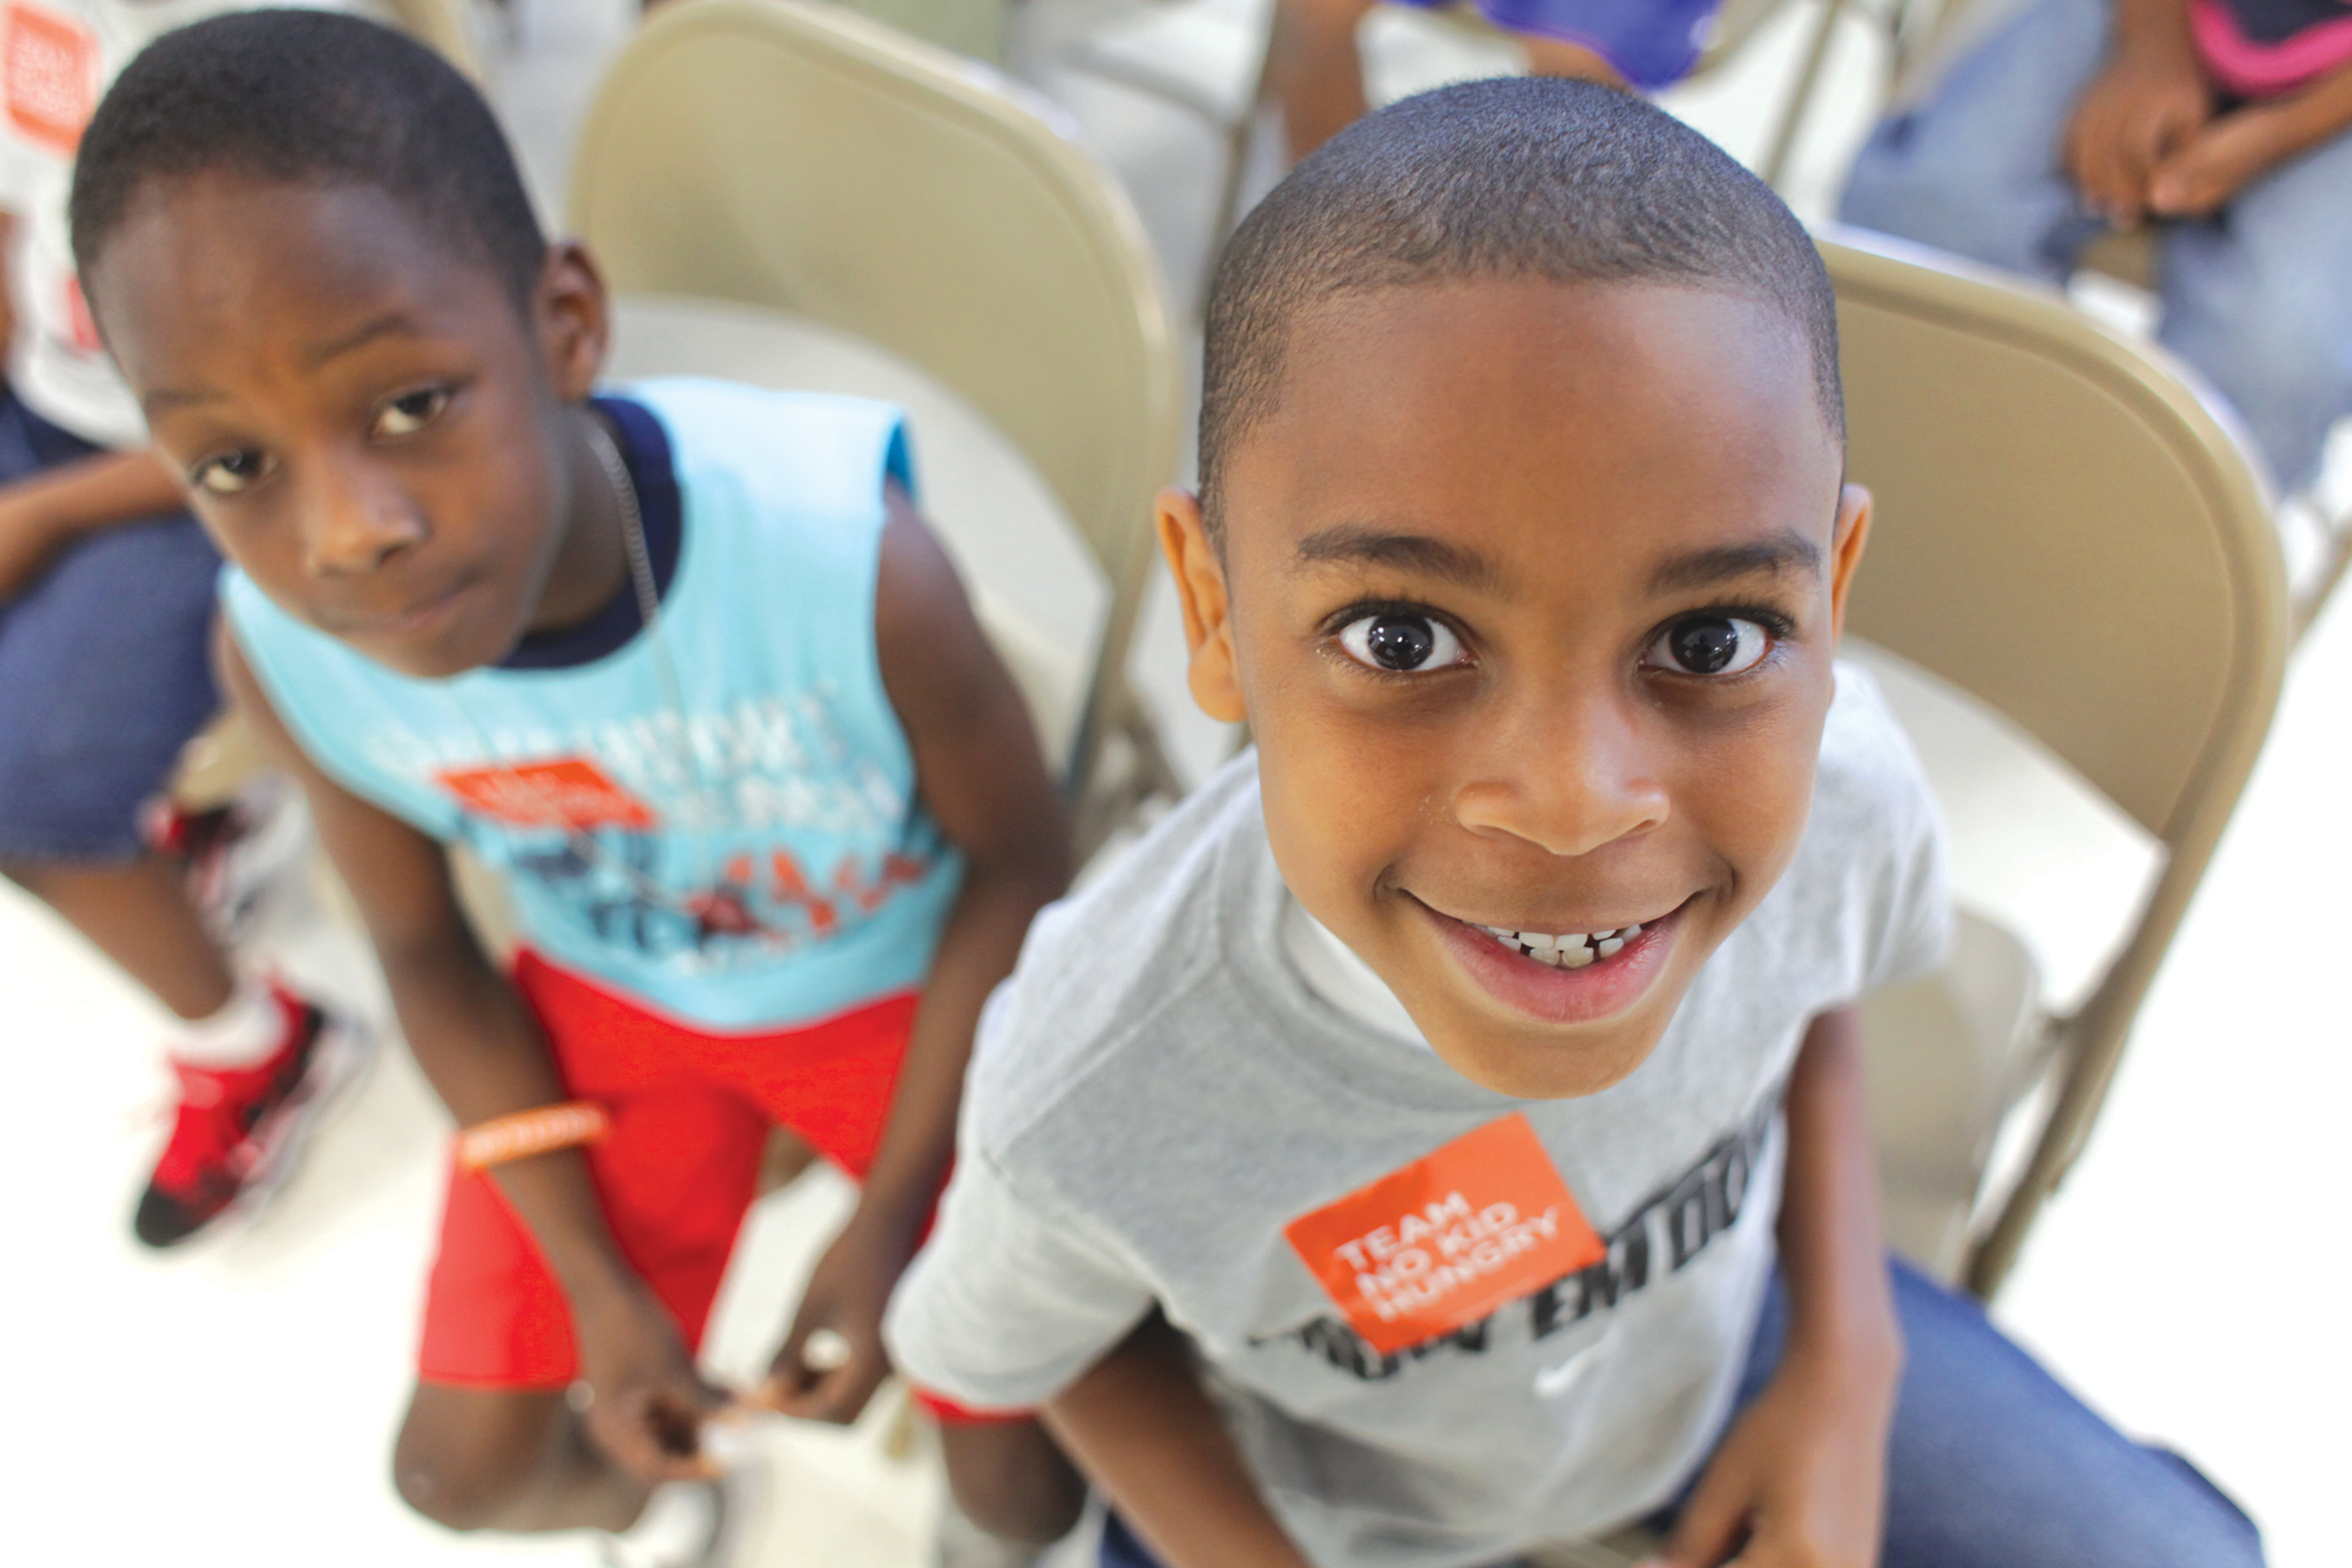 One and four kids in the U.S. could face hunger this year because of the coronavirus, which is why Bar Louie and No Kid Hungry are partnering to help kids like this in need.